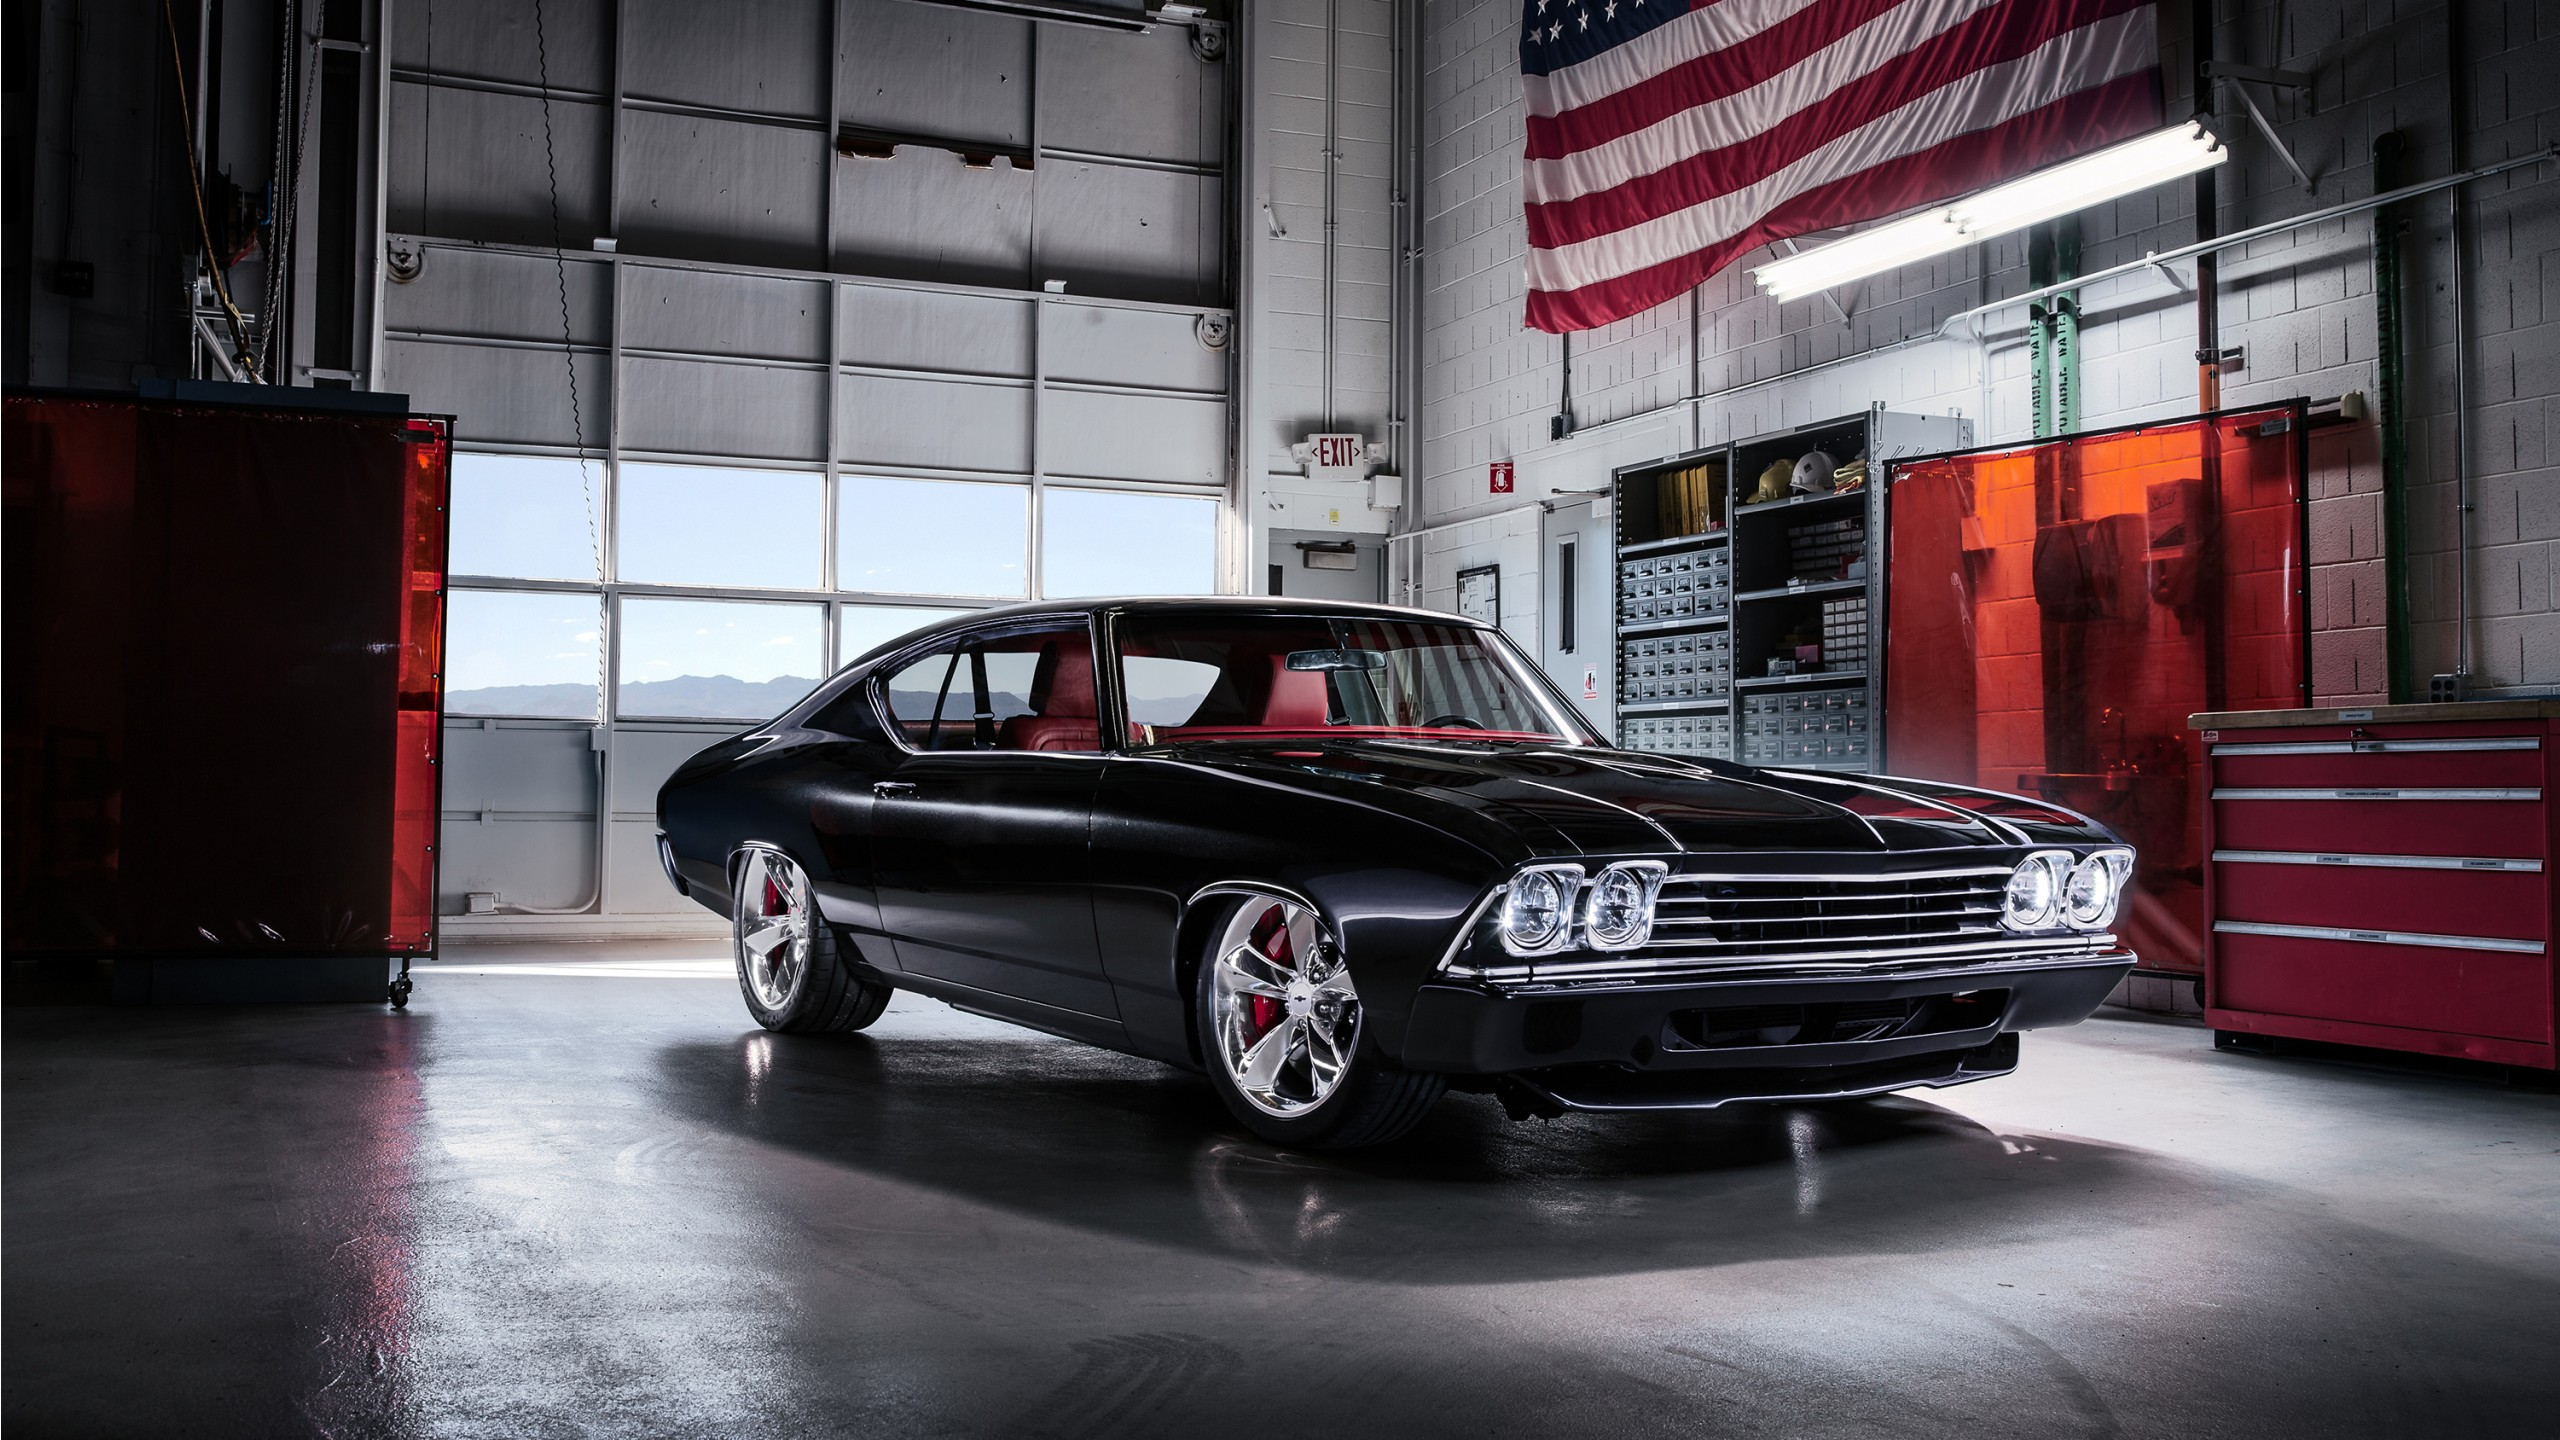 Chevrolet Chevelle Classic Wallpaper Hd Car Wallpapers Id 7168